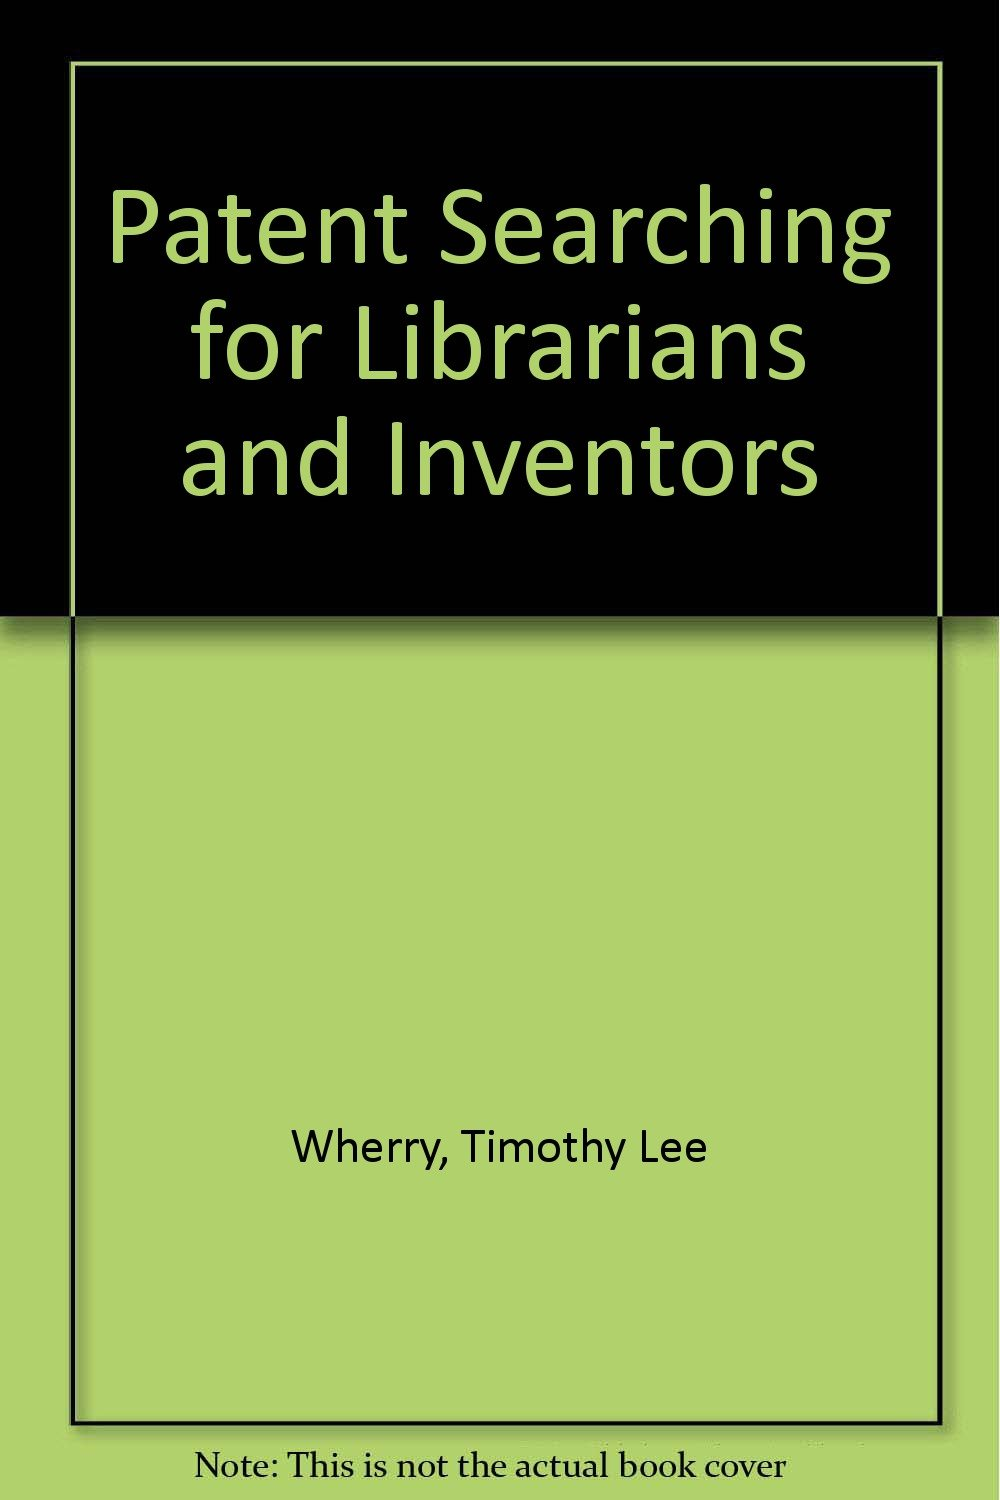 Patent Searching for Librarians and Inventors, Wherry, Timothy Lee